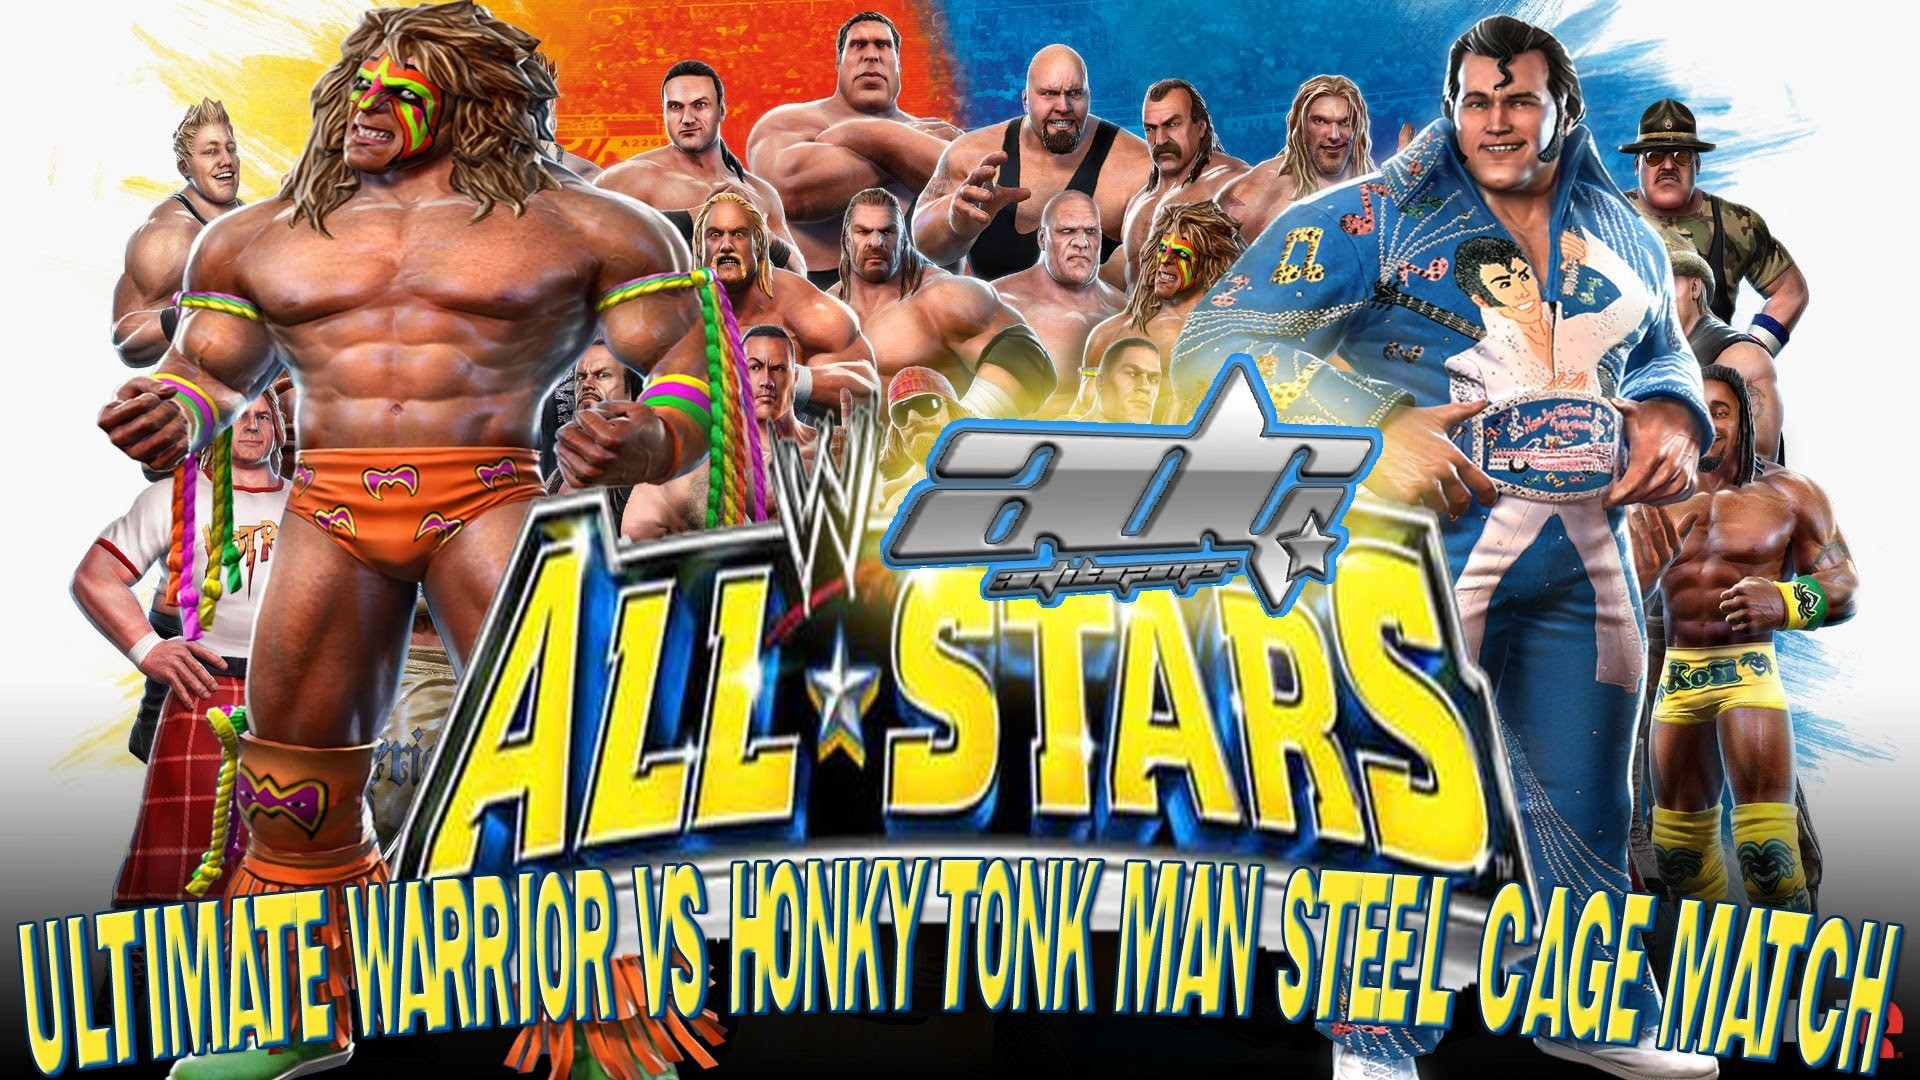 Silent But Deadly Games – WWE All-Stars: Ultimate Warrior vs Honky Tonk Man  Steel Cage Match – YouTube